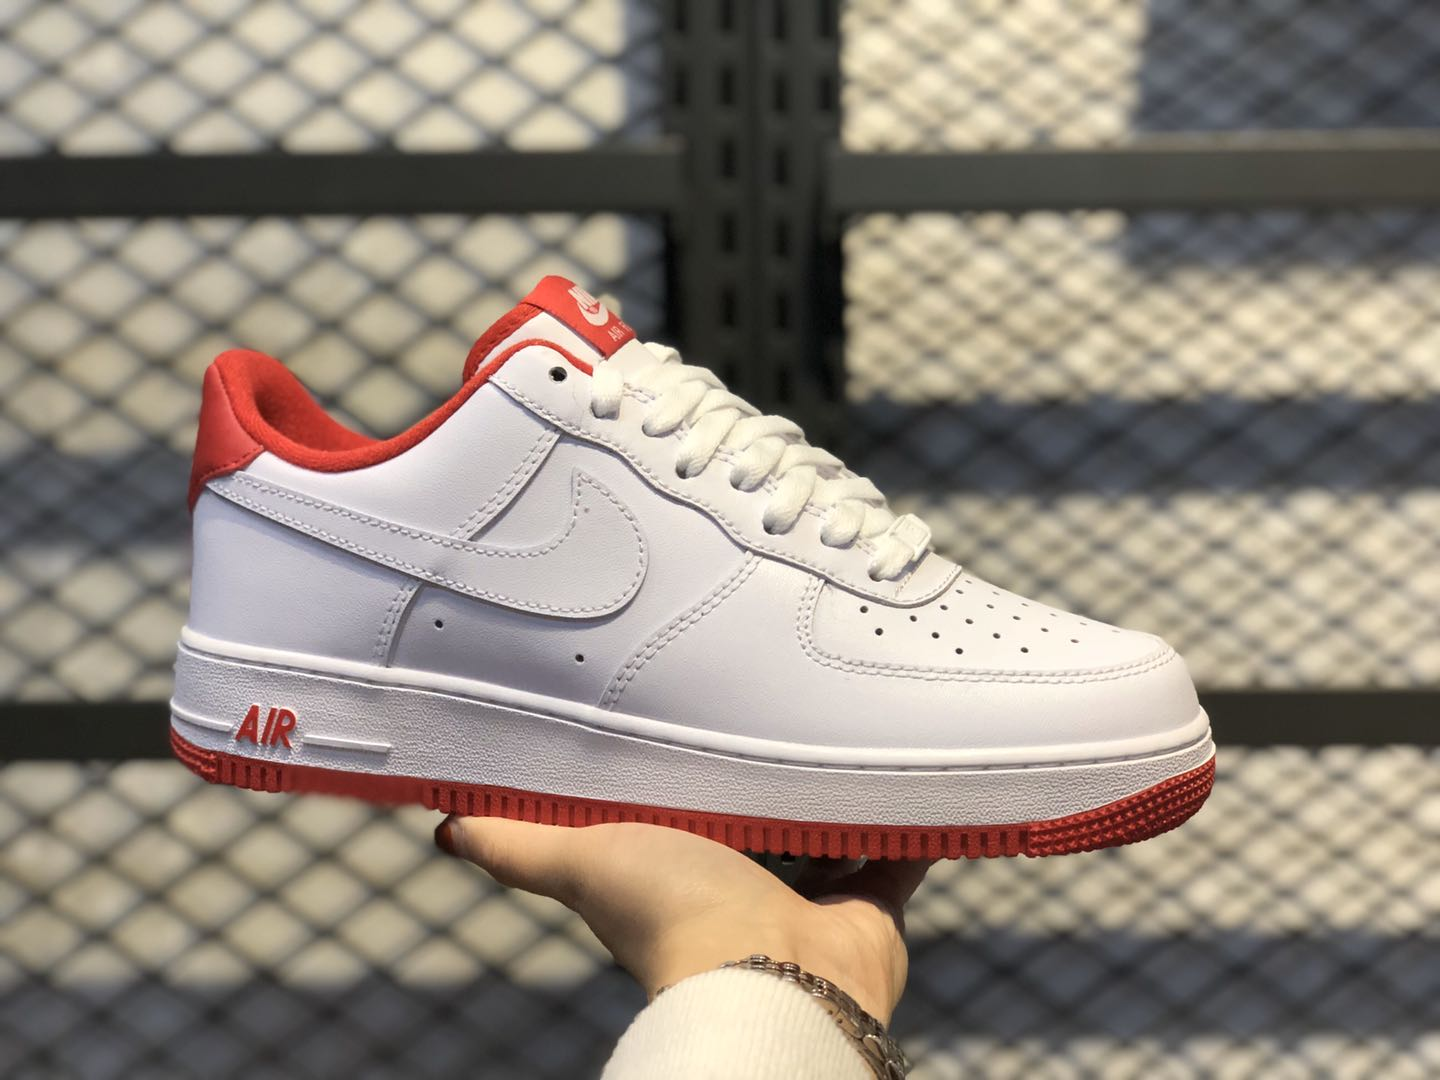 Nike Air Force 1 Low White/University Red CD0884-101 For Sale